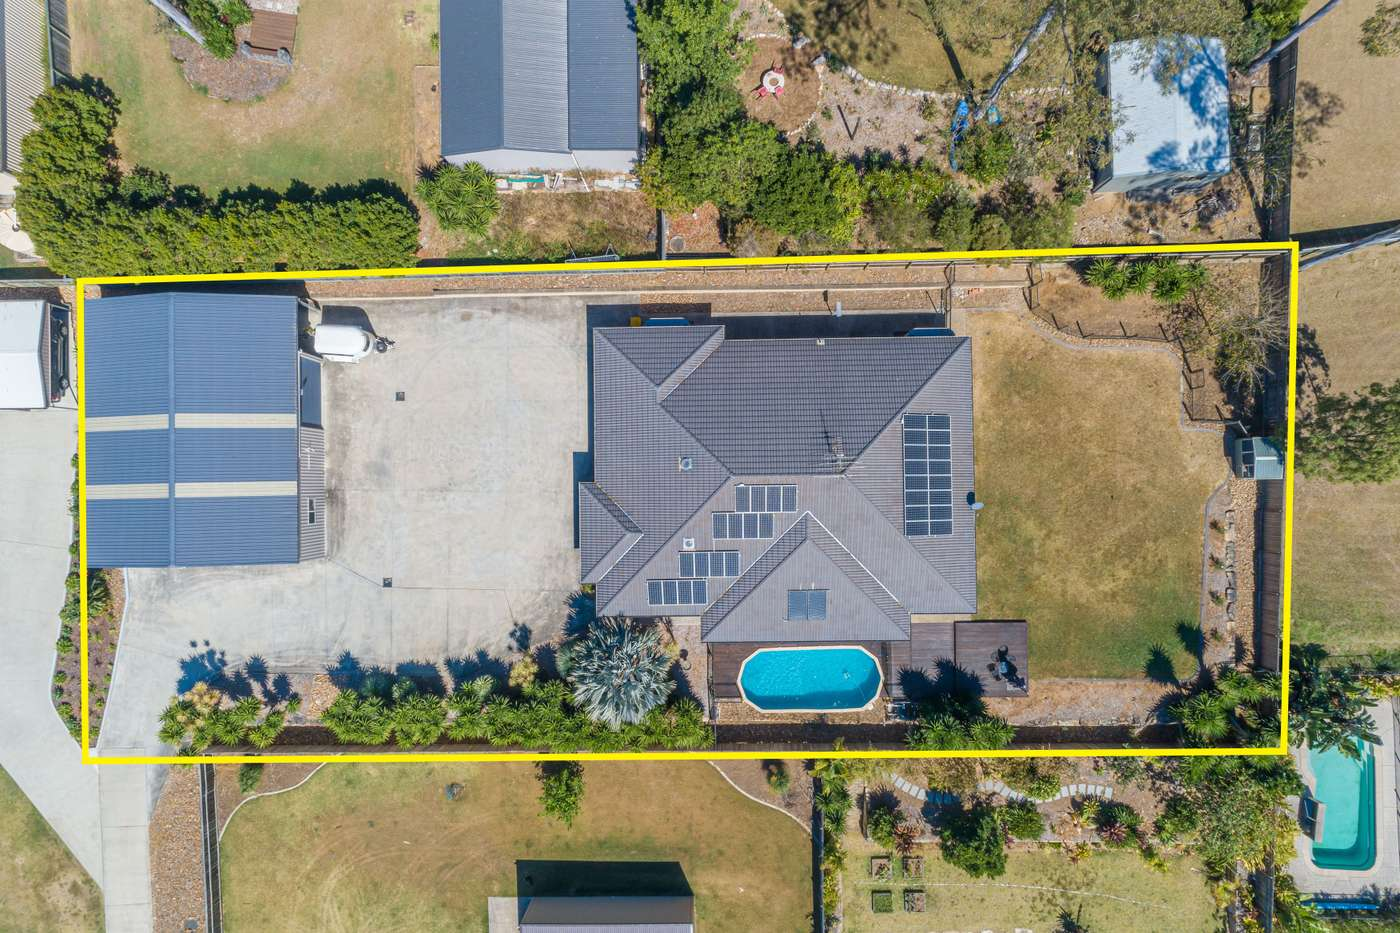 Main view of Homely house listing, 7 Mattie Lee Court, Joyner, QLD 4500